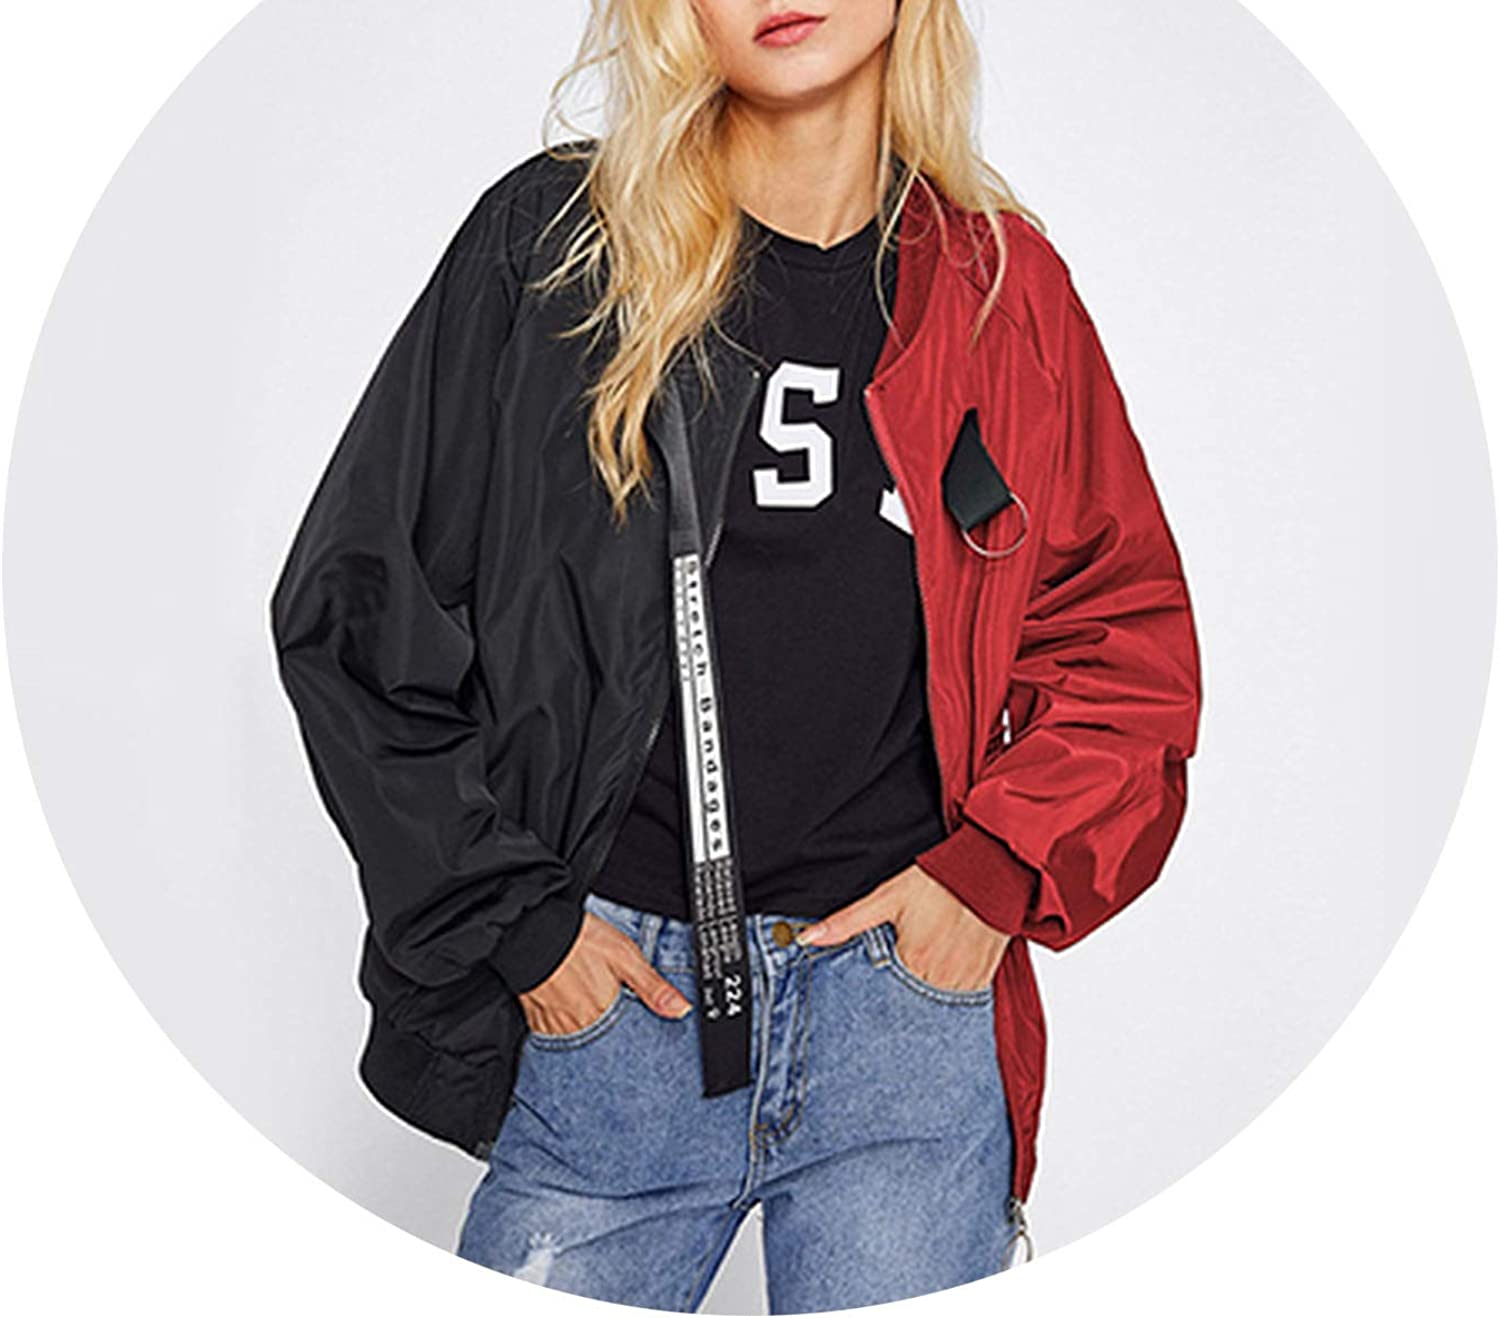 Pursuitofself 2018 New Ribbon Zip Up Jacket Patchwork Casual Bomber Jacket